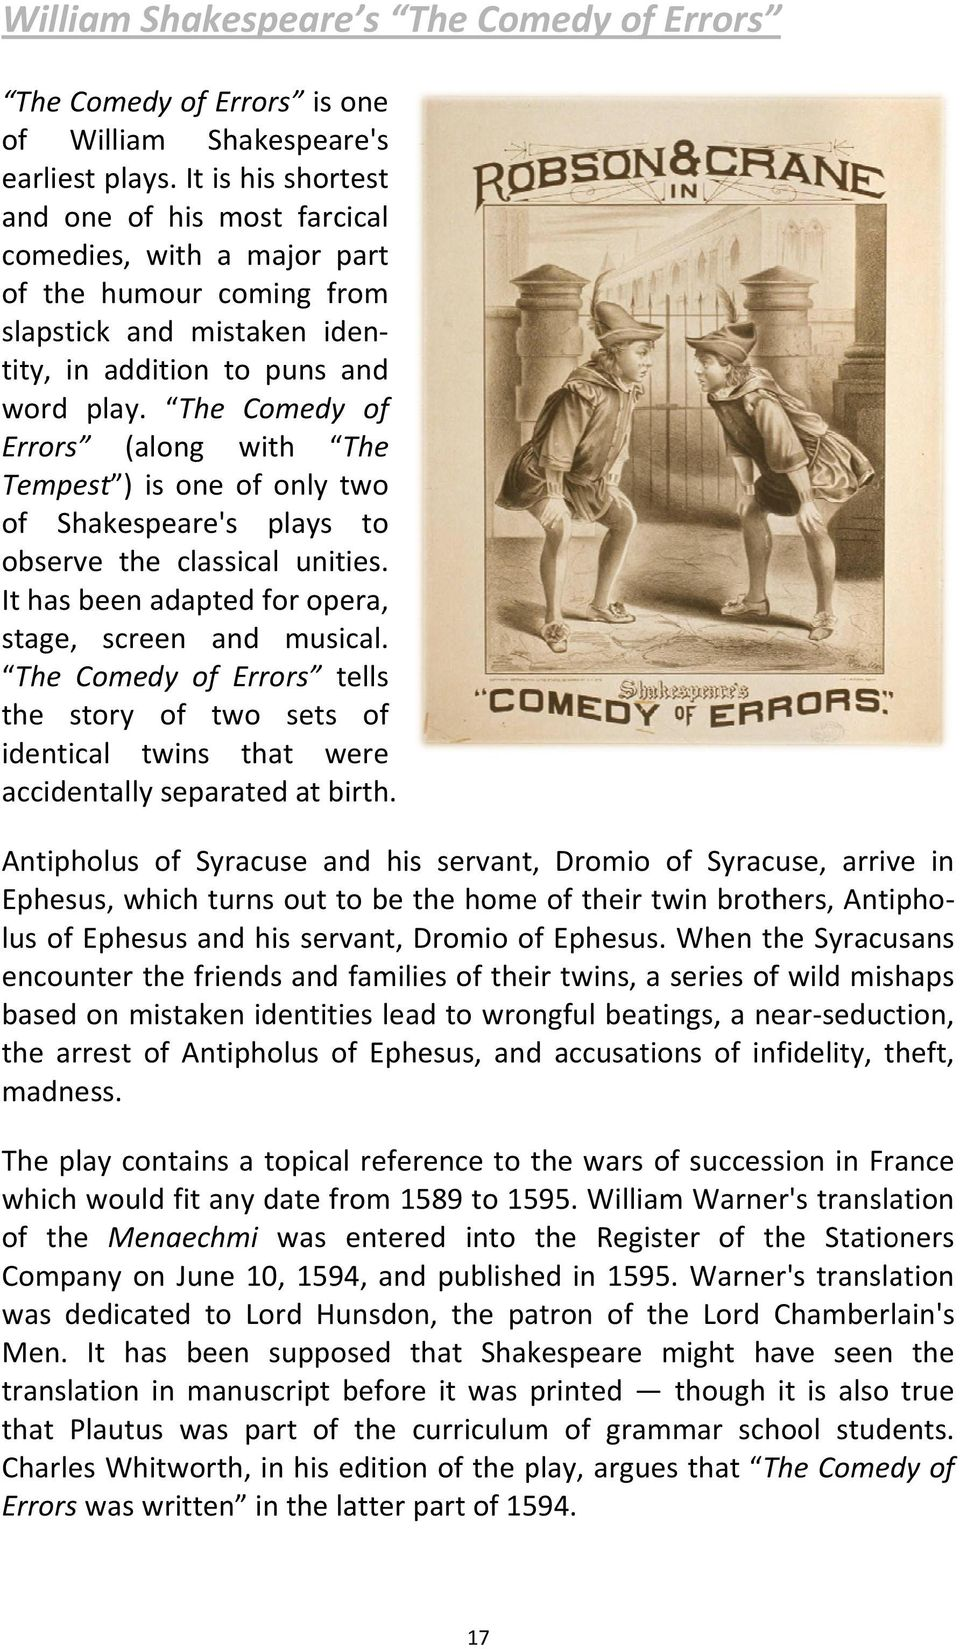 The Comedy of Errors (along with The Tempest ) is one of only two of Shakespeare's plays to observe the classical unities. It has been adapted for opera, stage, screen and musical.